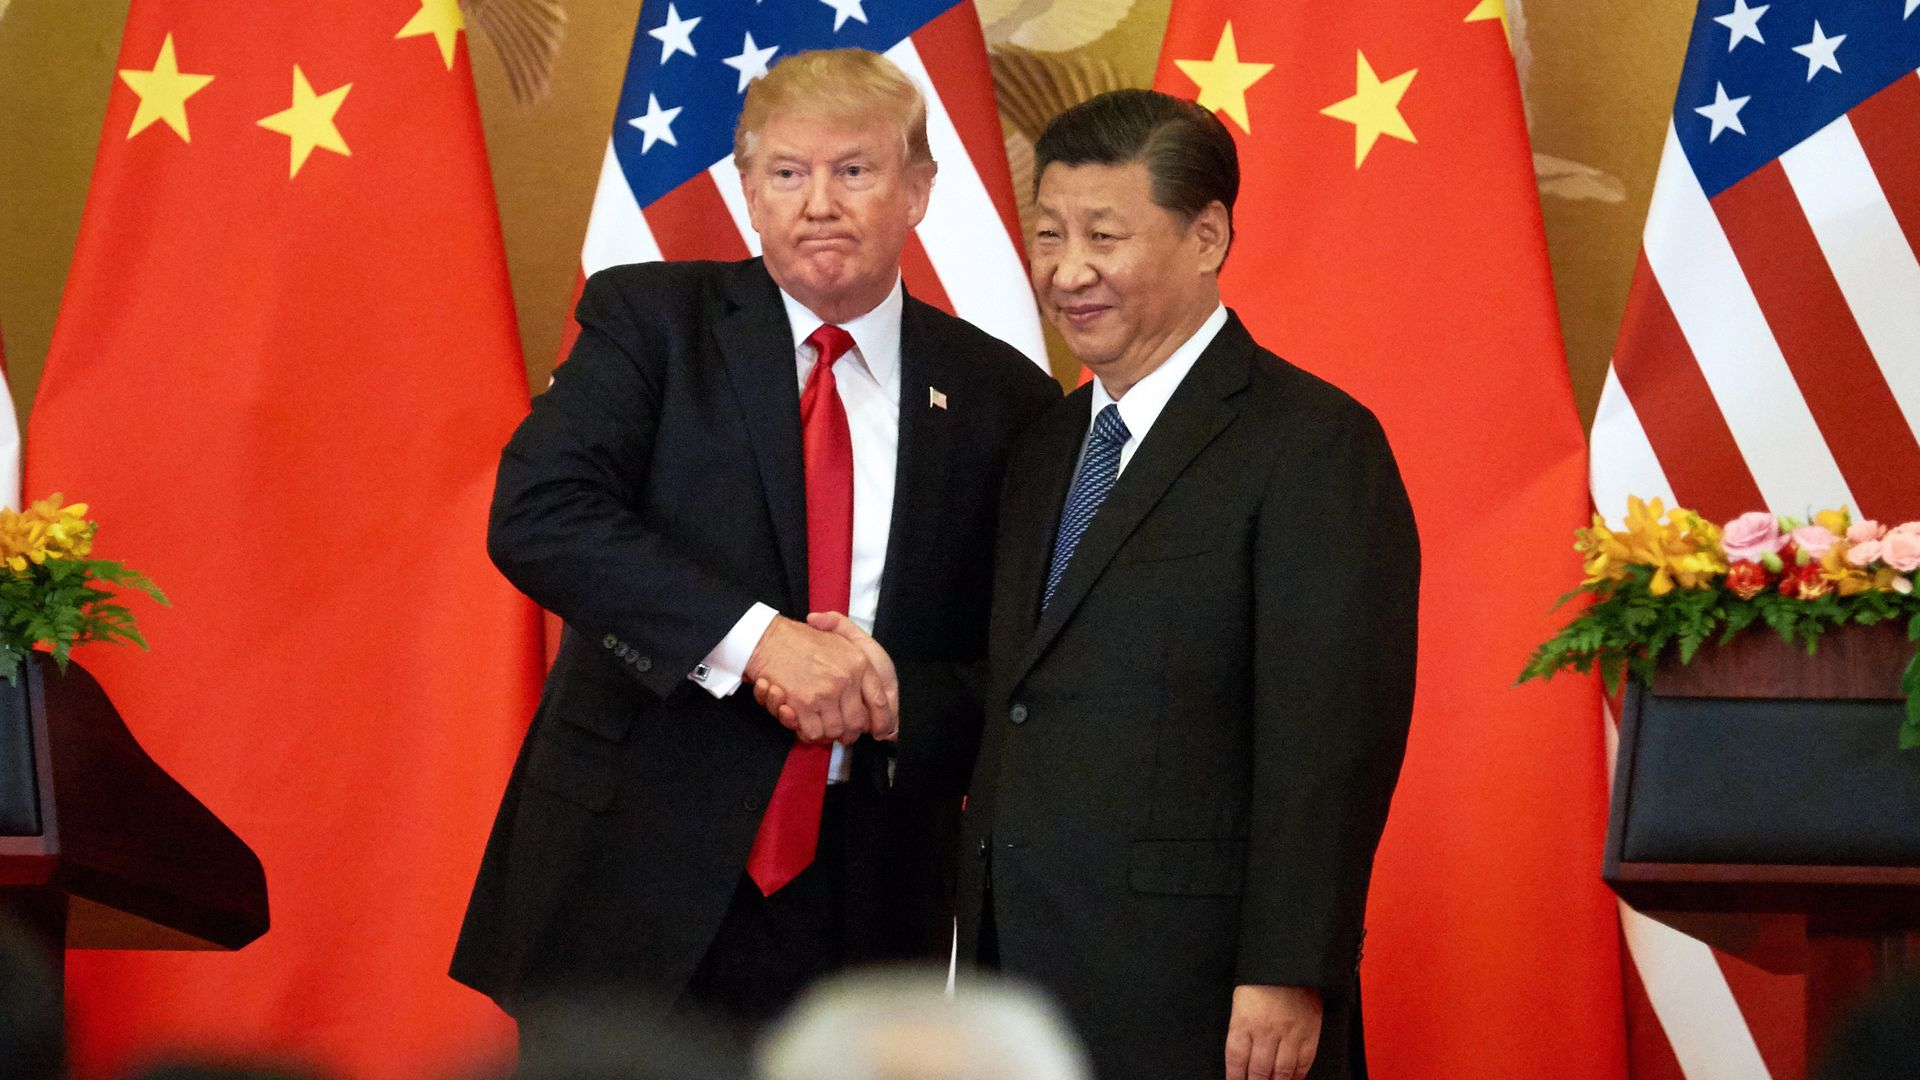 President Trump shakes hands with China's President Xi Jinping